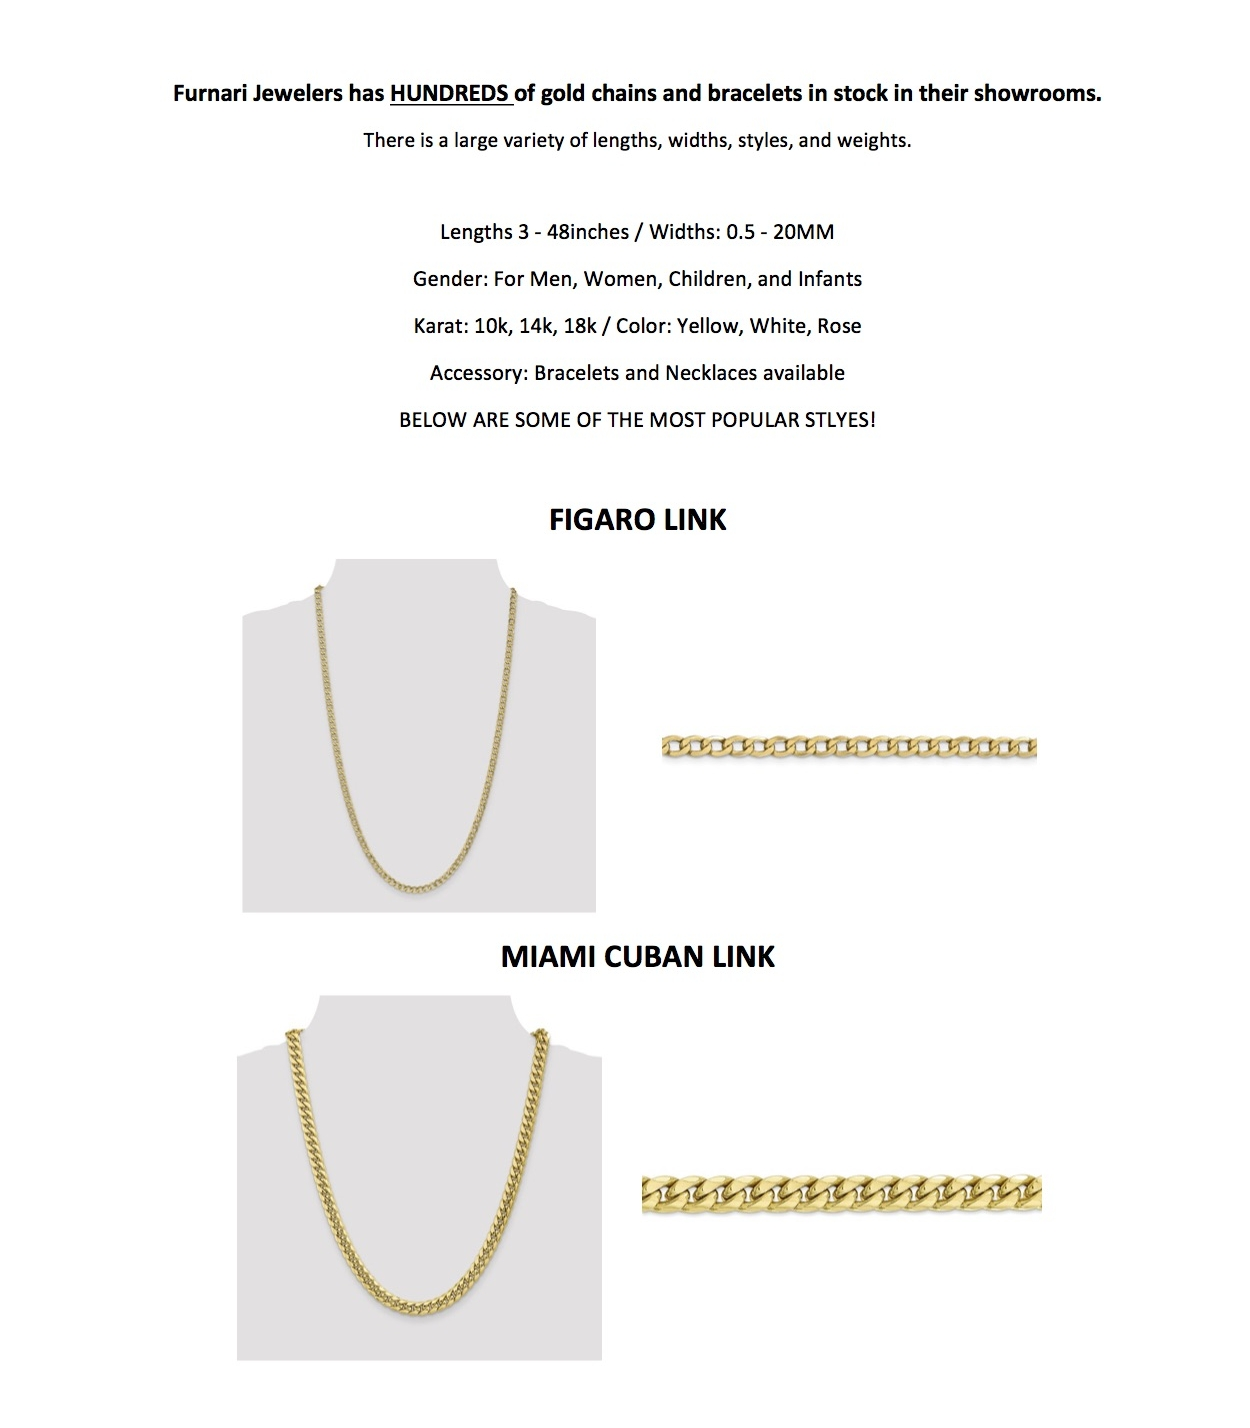 GOLD CHAIN GUIDE IMAGES.jpg